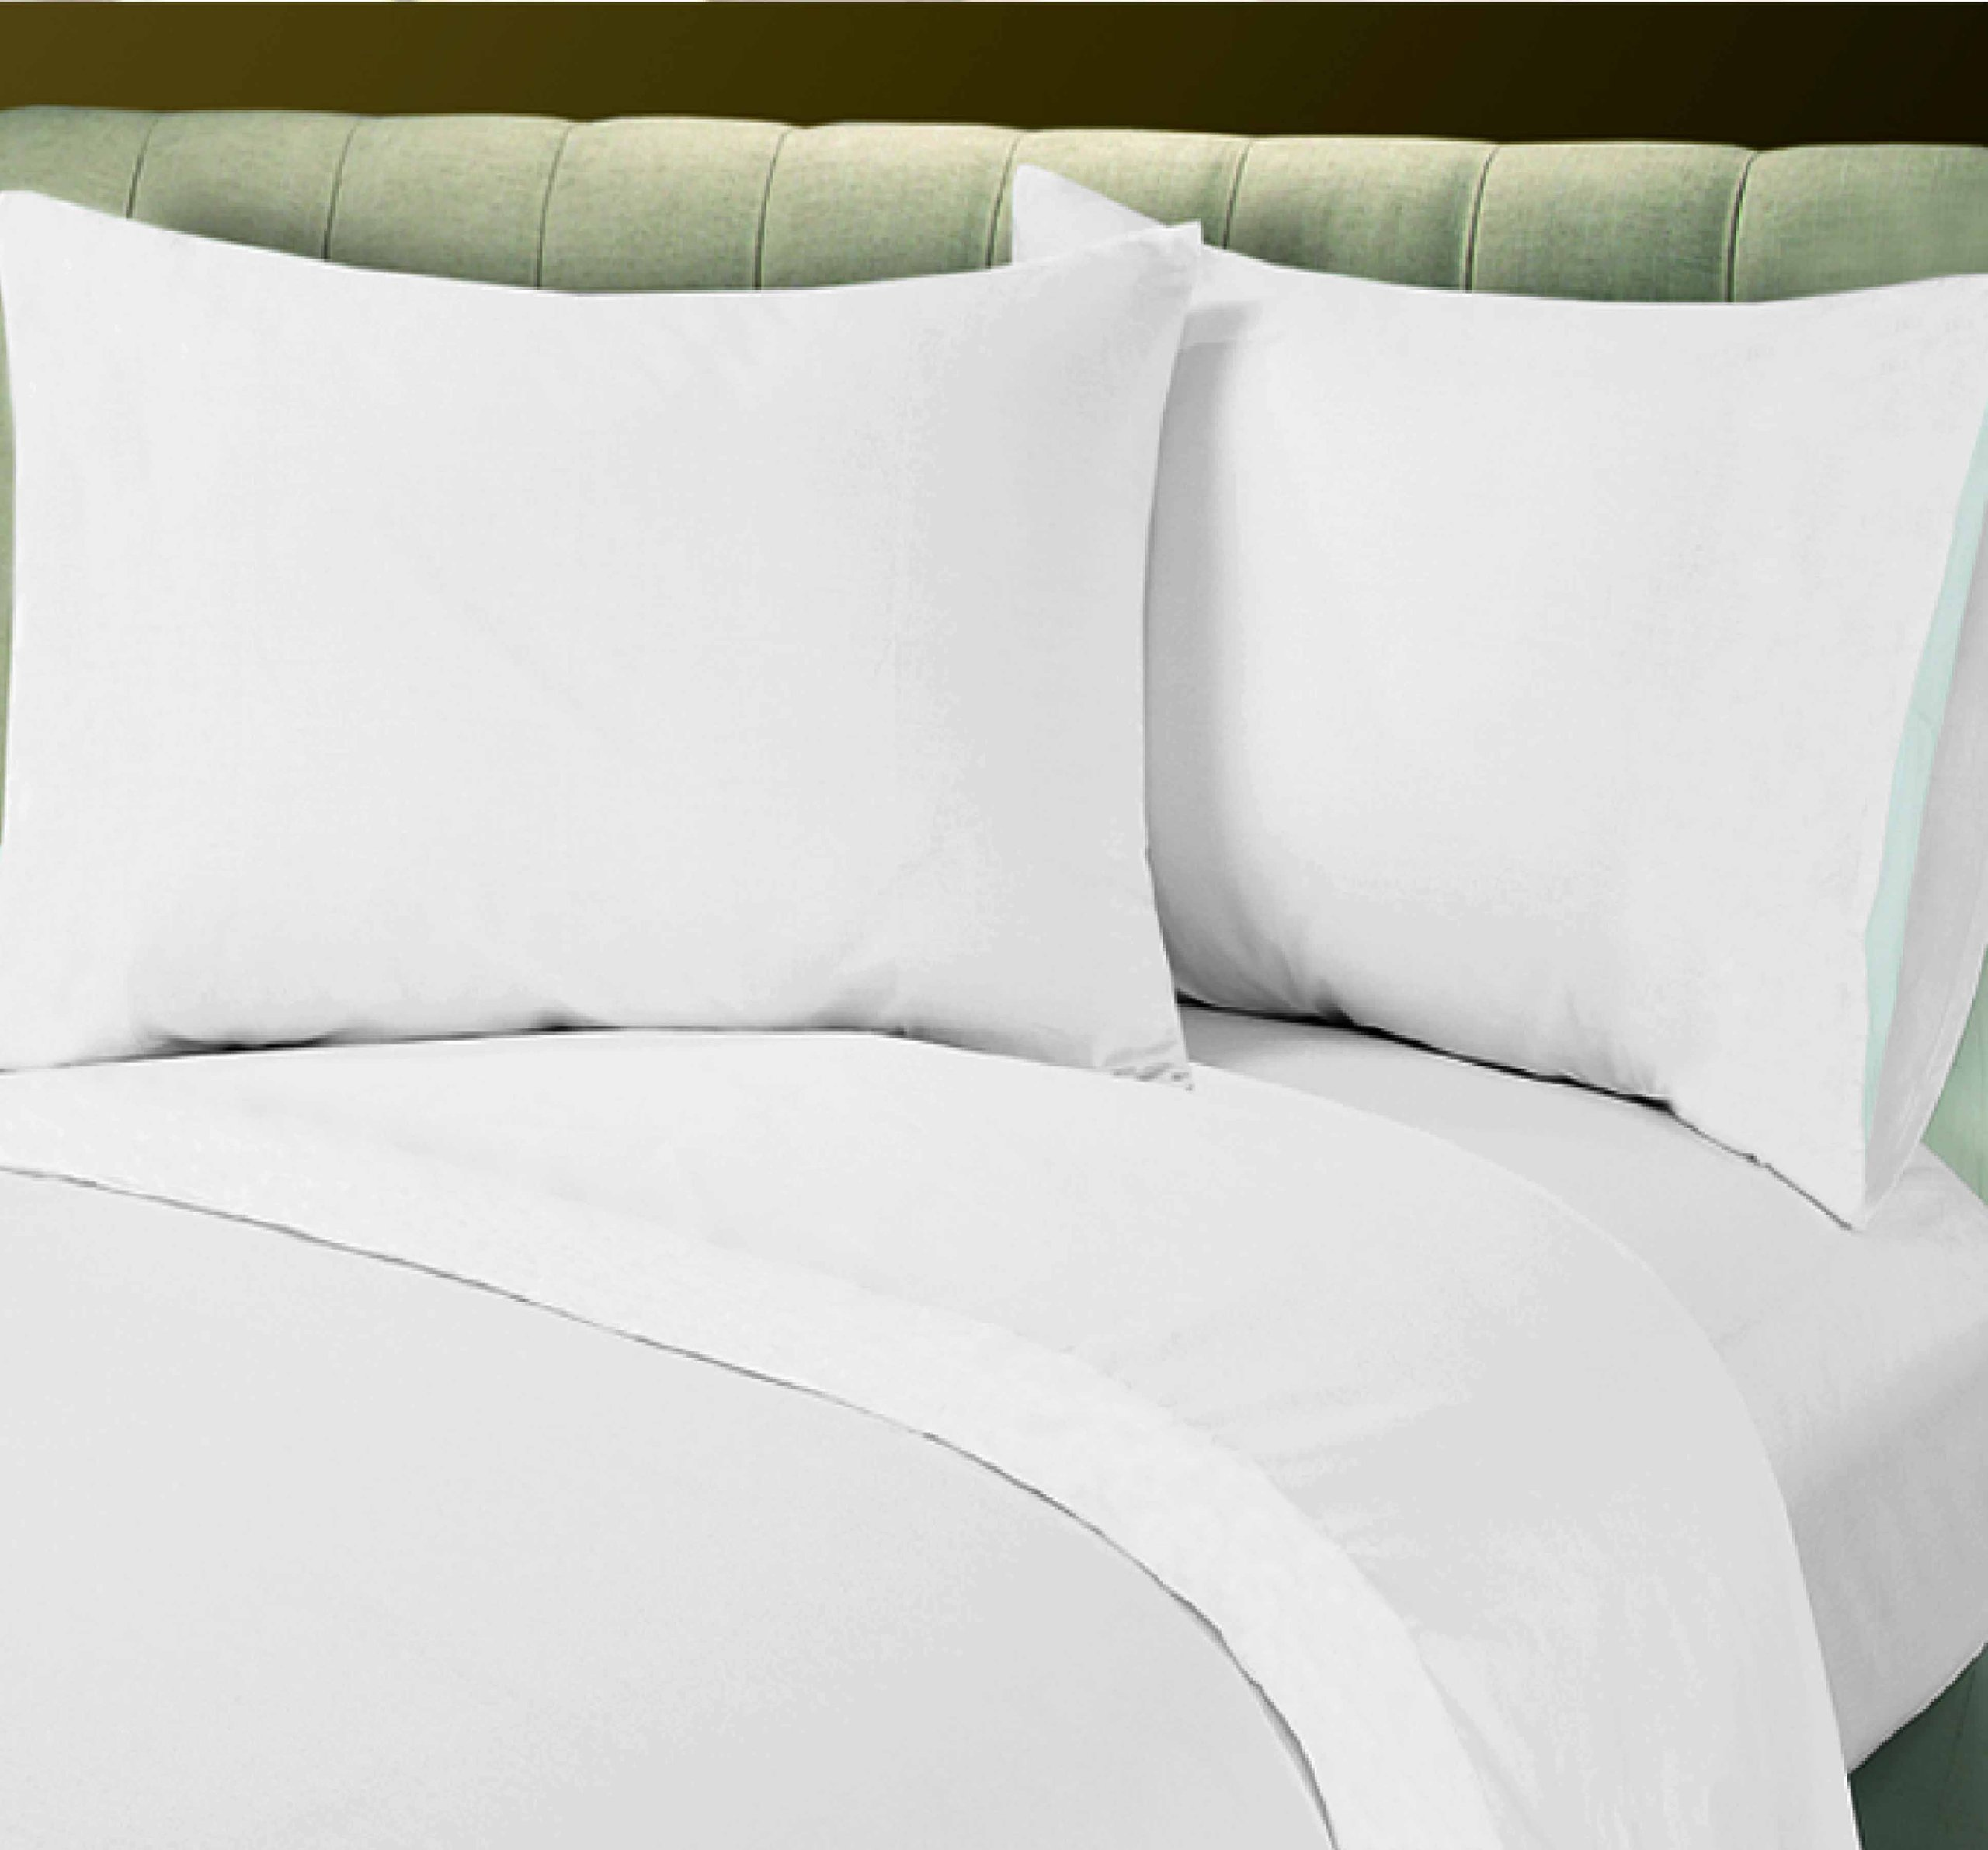 Union Hospitality 6 Dz (Dozen) Pillow Cases 20'' x 40'' T250 Thread Count Percale Hotel Linen - White (King)